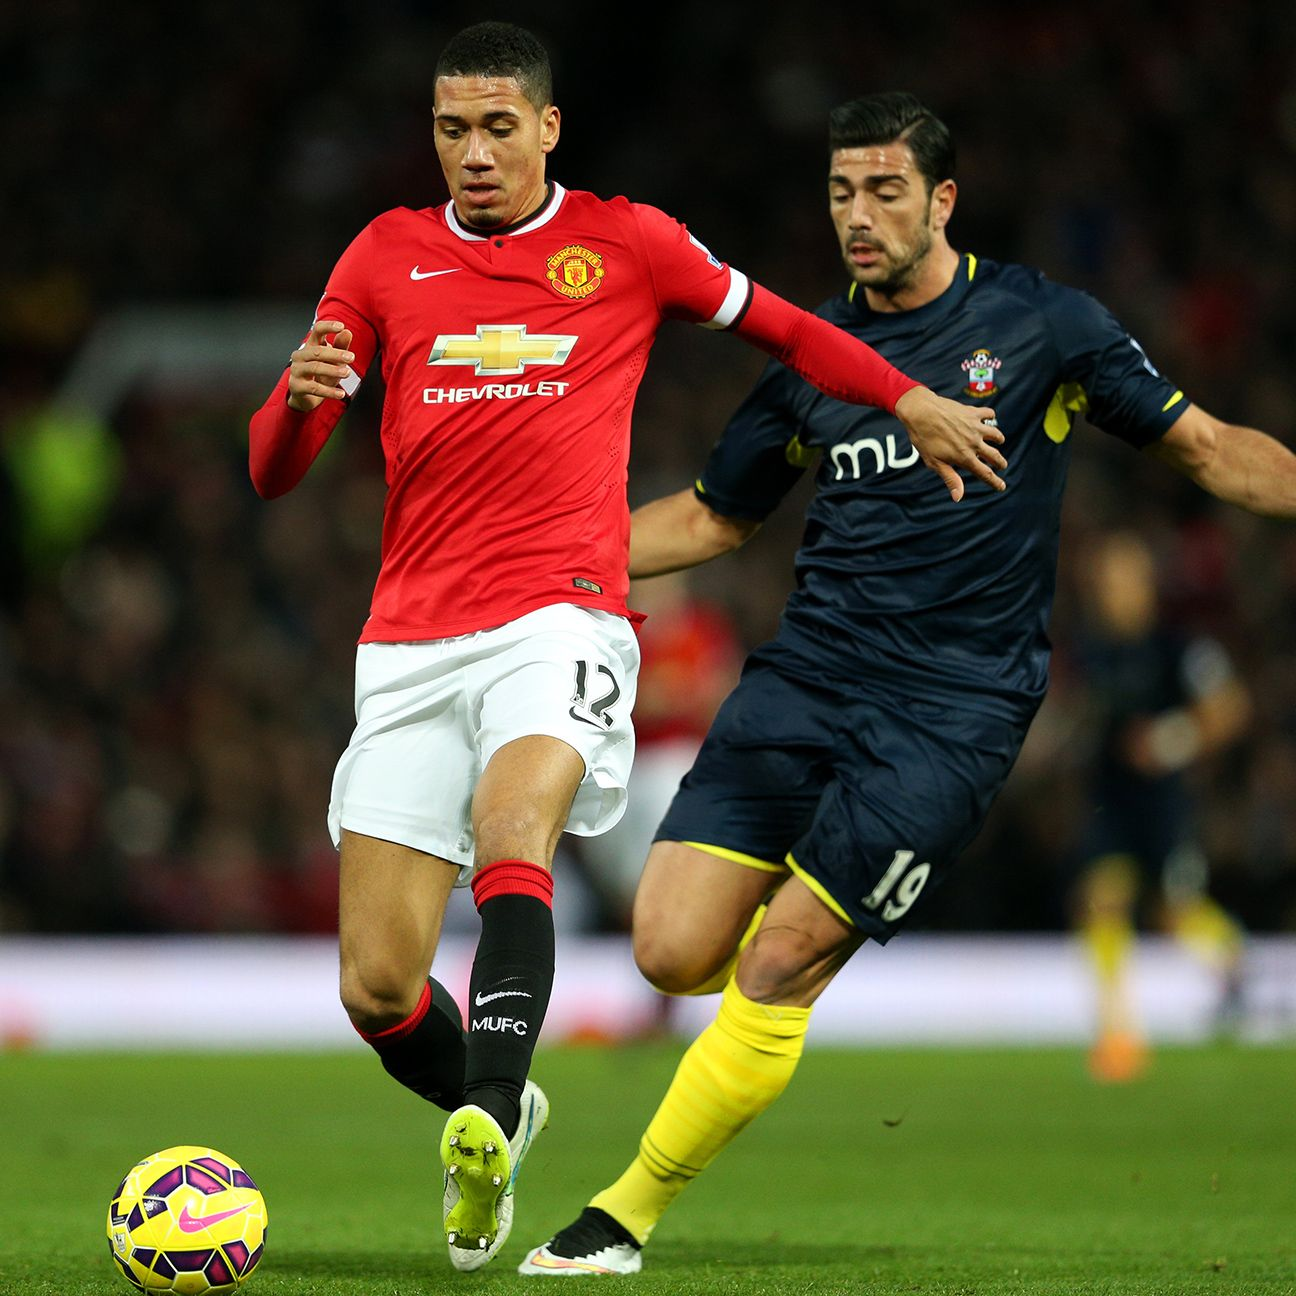 Chris Smalling has started 16 Premier League matches for Manchester United this season.